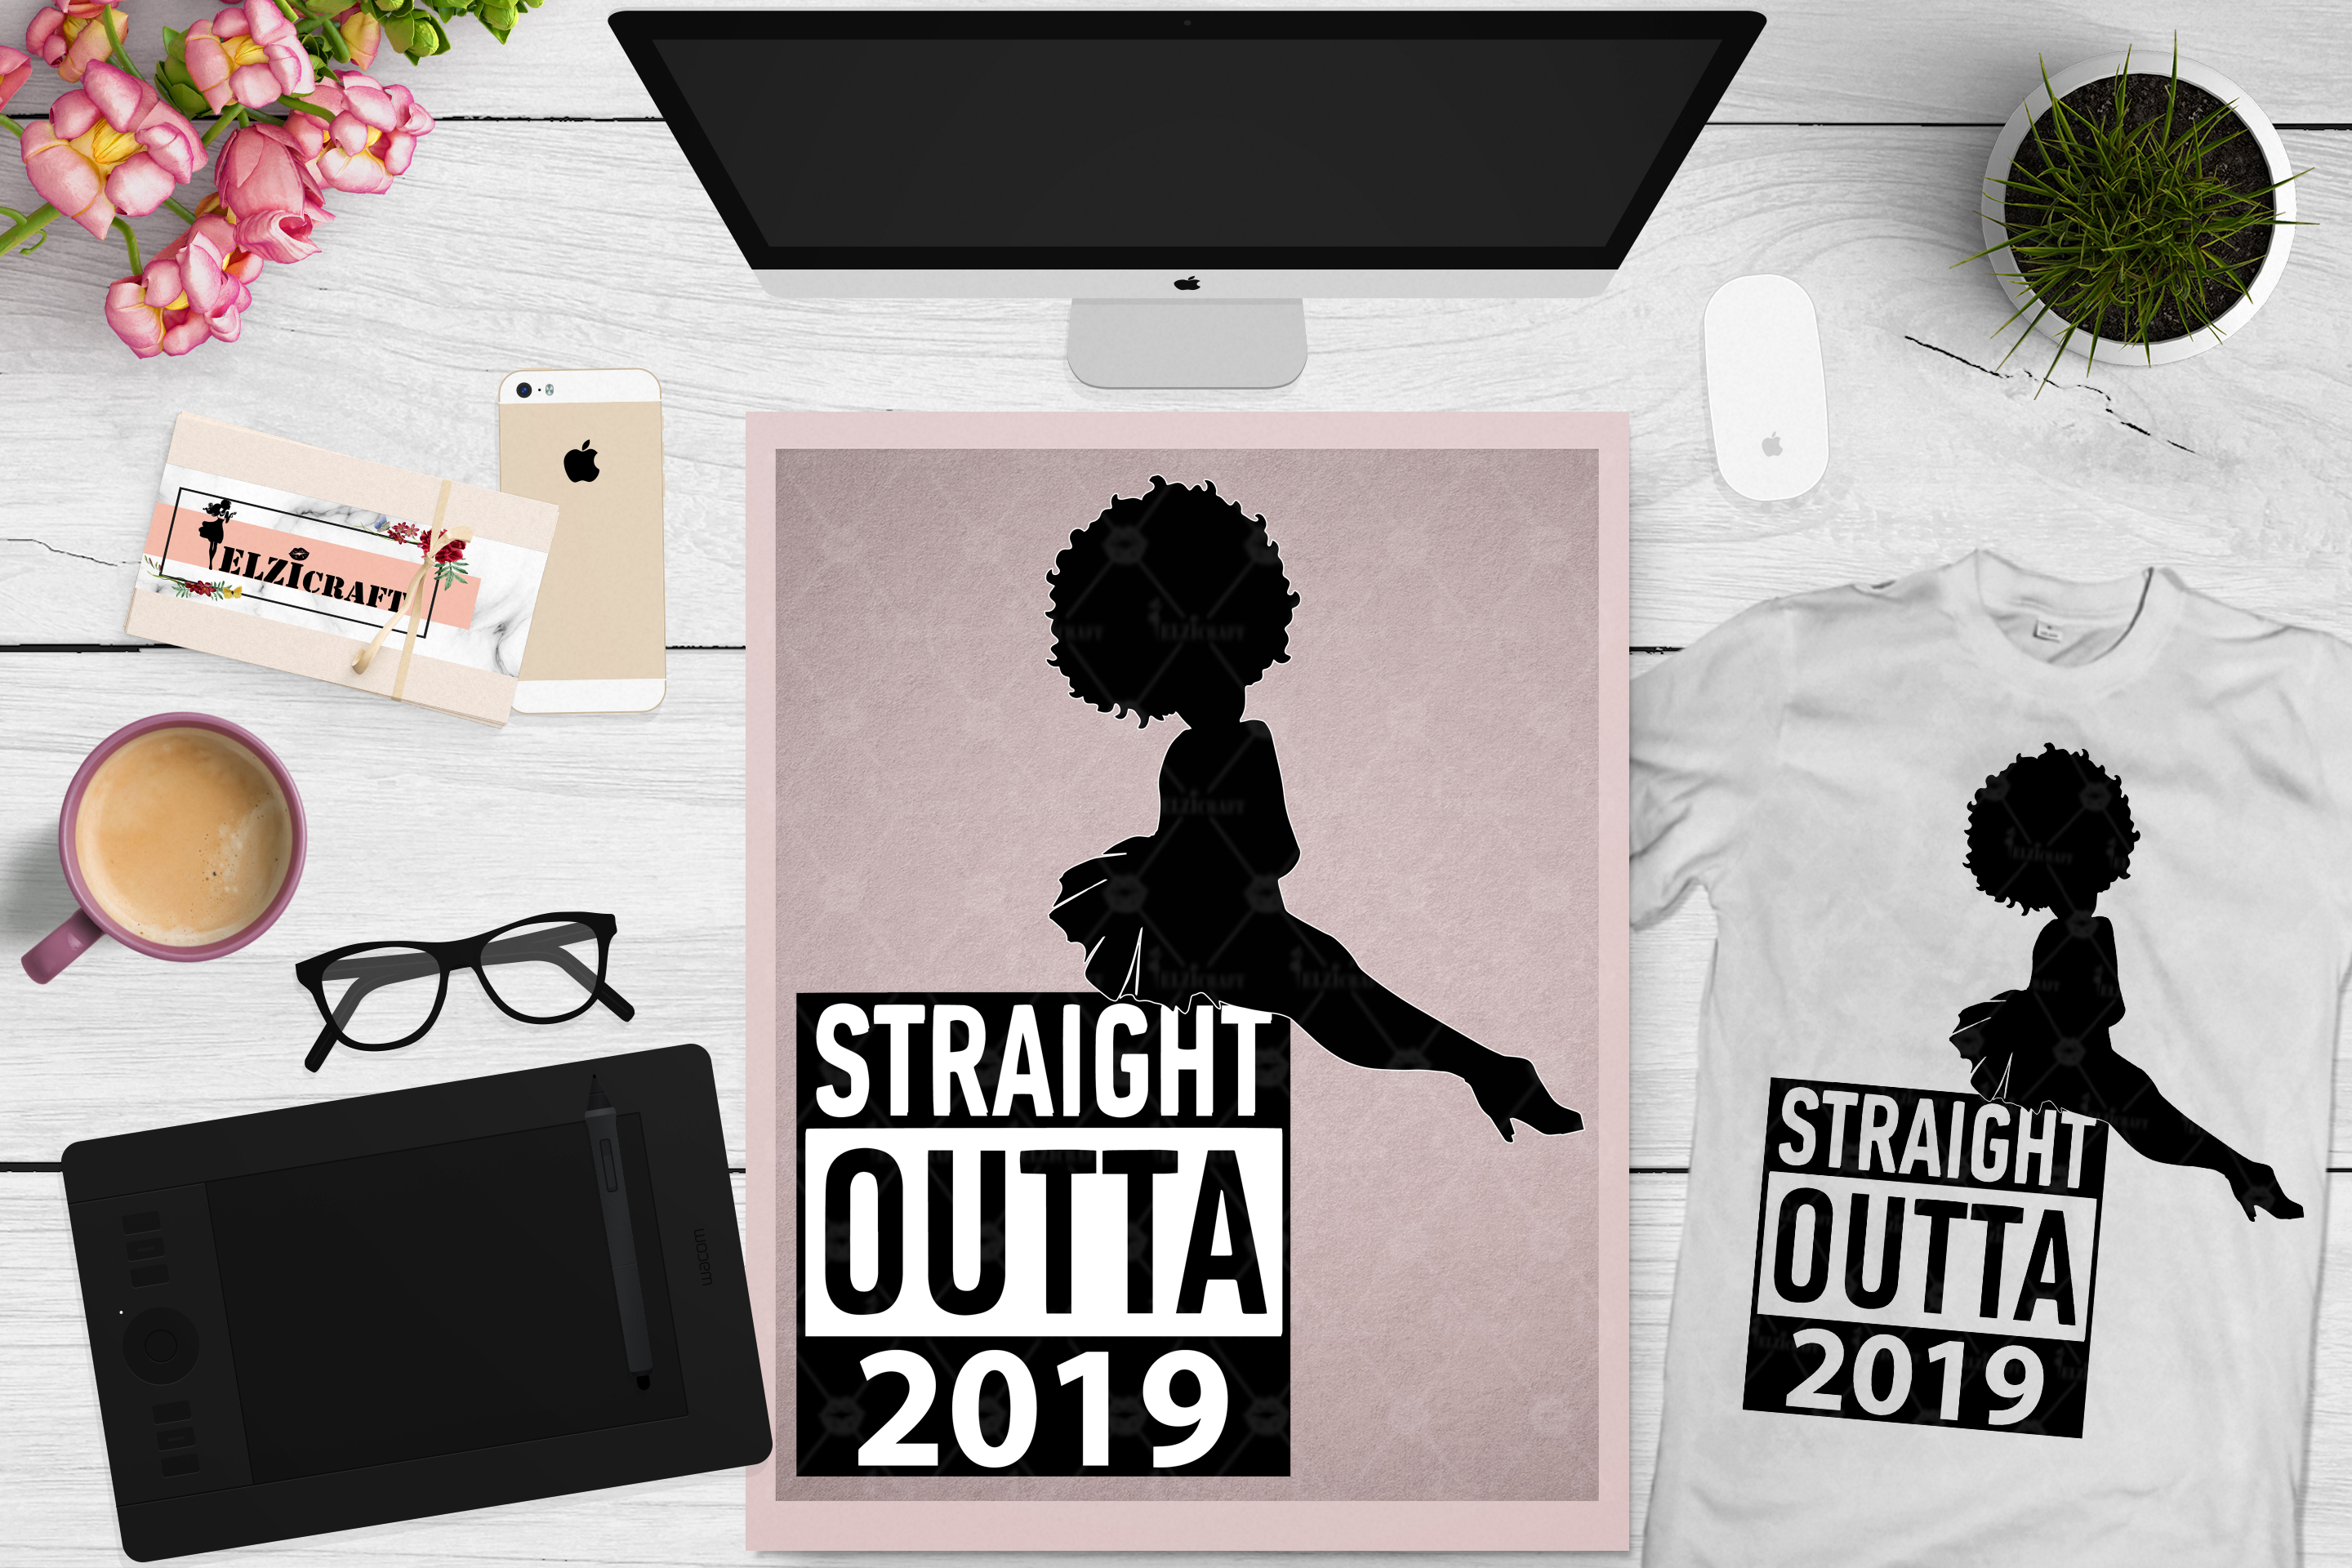 Straight Outta 2019 Afro Woman Hair Silhouette SVG Cut File example image 1